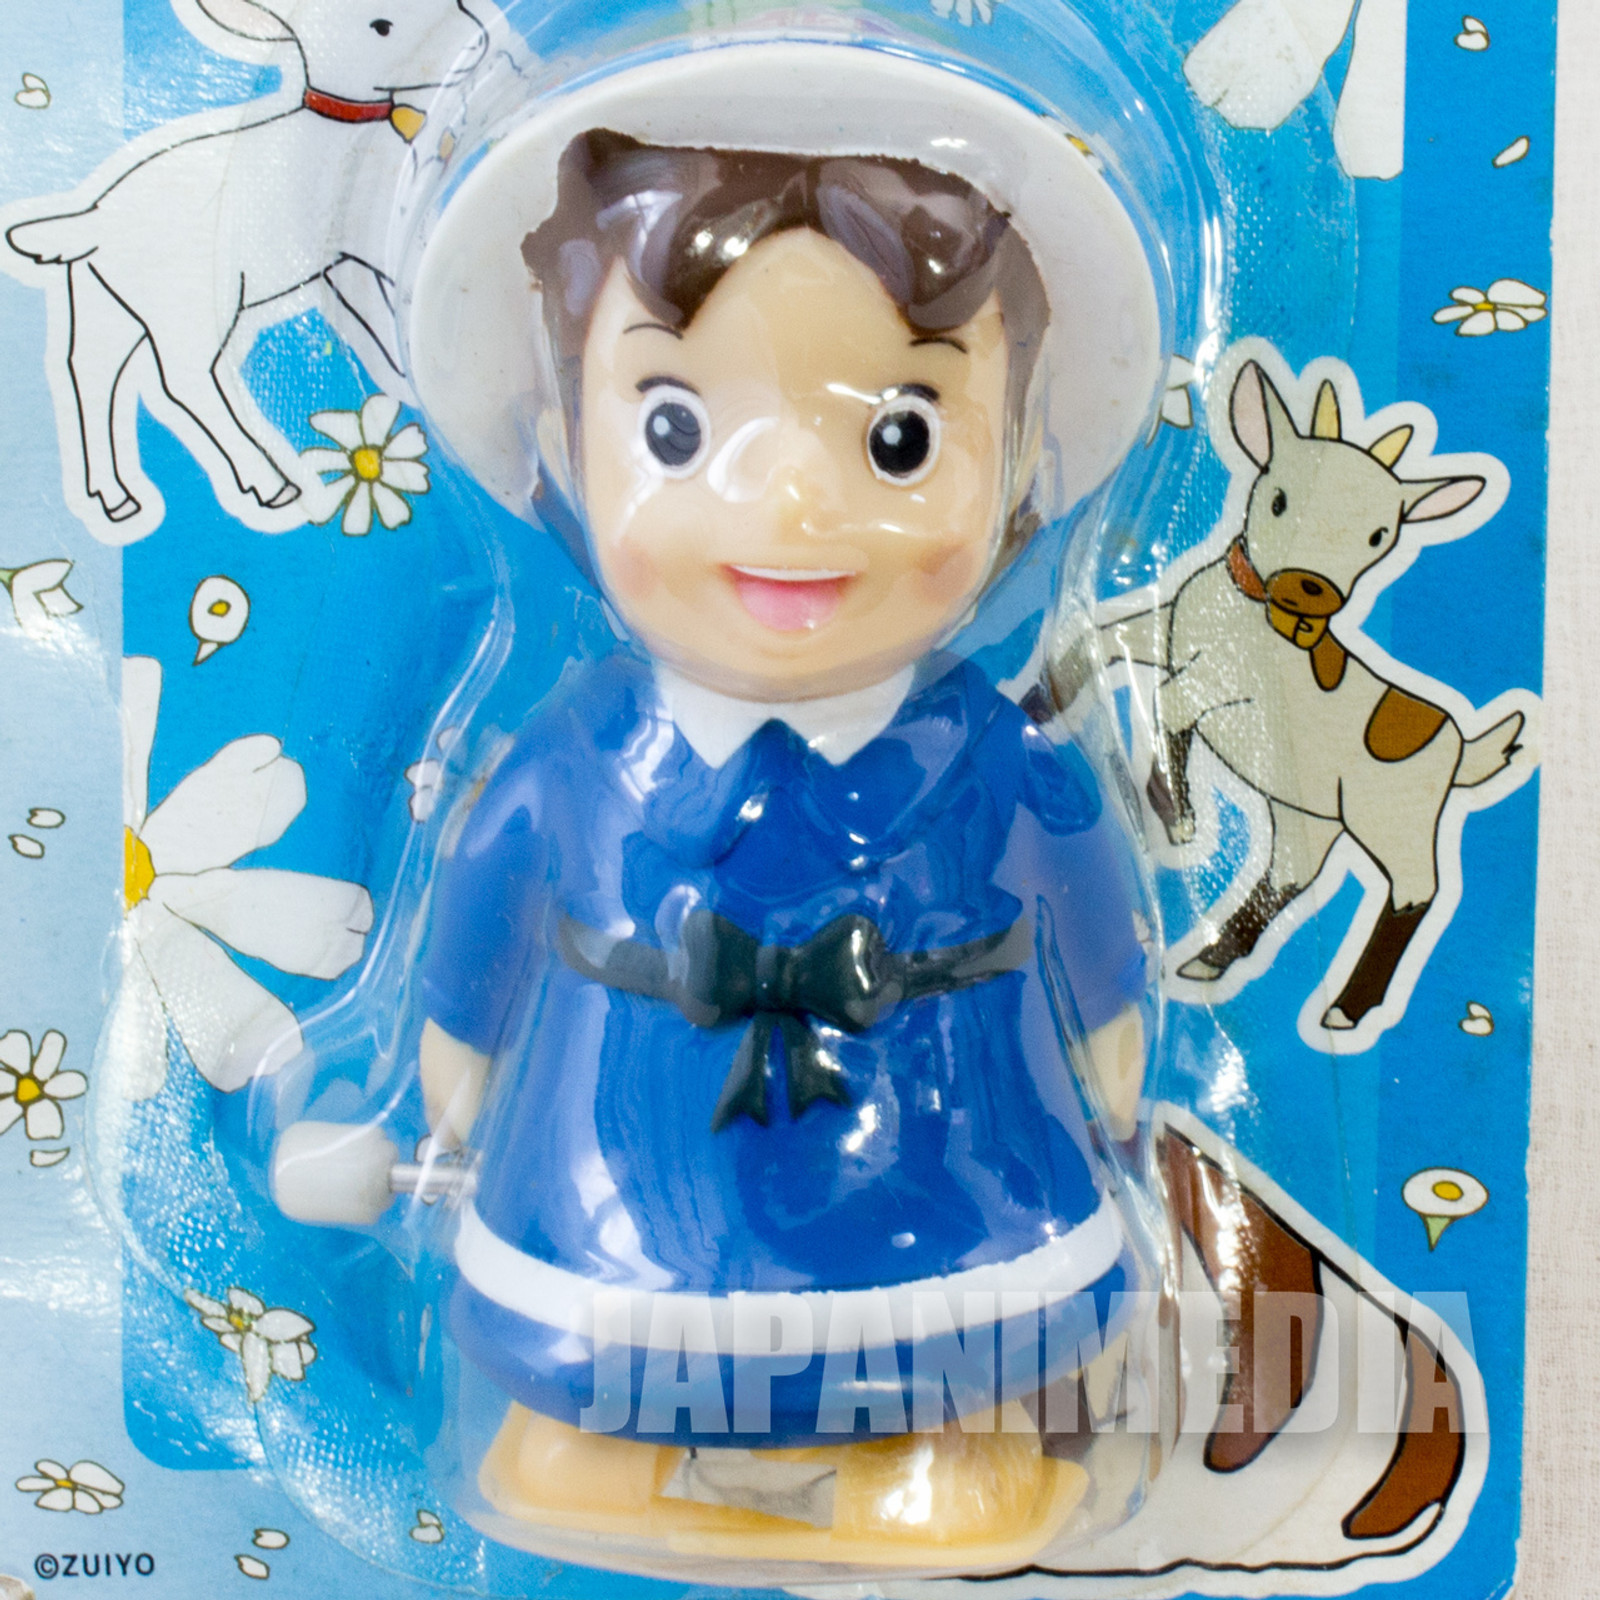 RARE Heidi Girl of the Alps Tokotoko Mascot Wind Up Figure 2 JAPAN ANIME